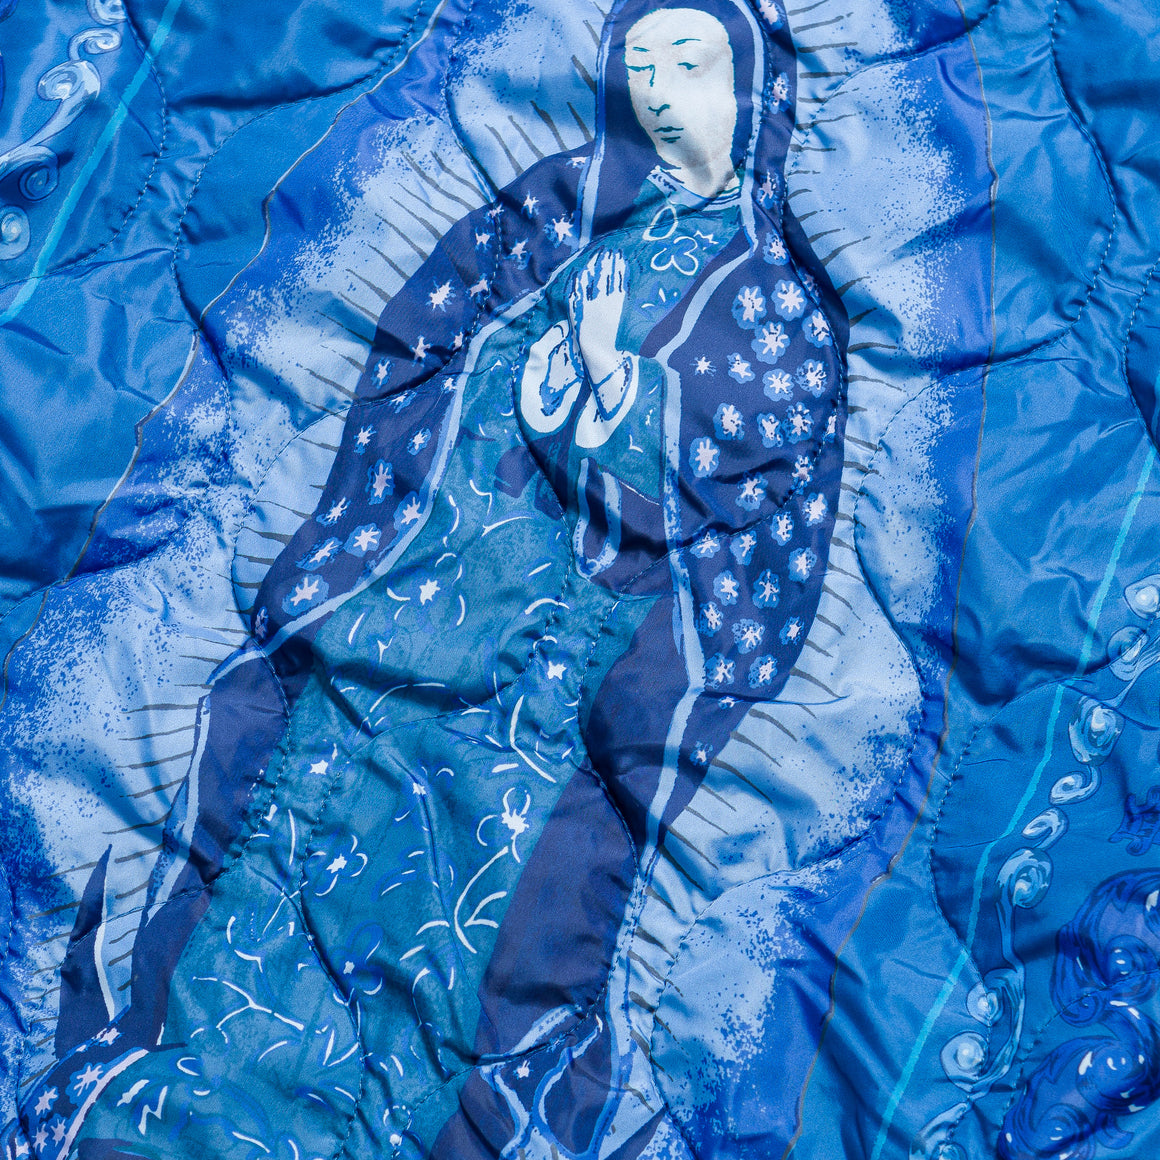 Kapital - Fleece Knit Bivouac Sweat (Virgin Mary) - Indigo/Purple - Up There